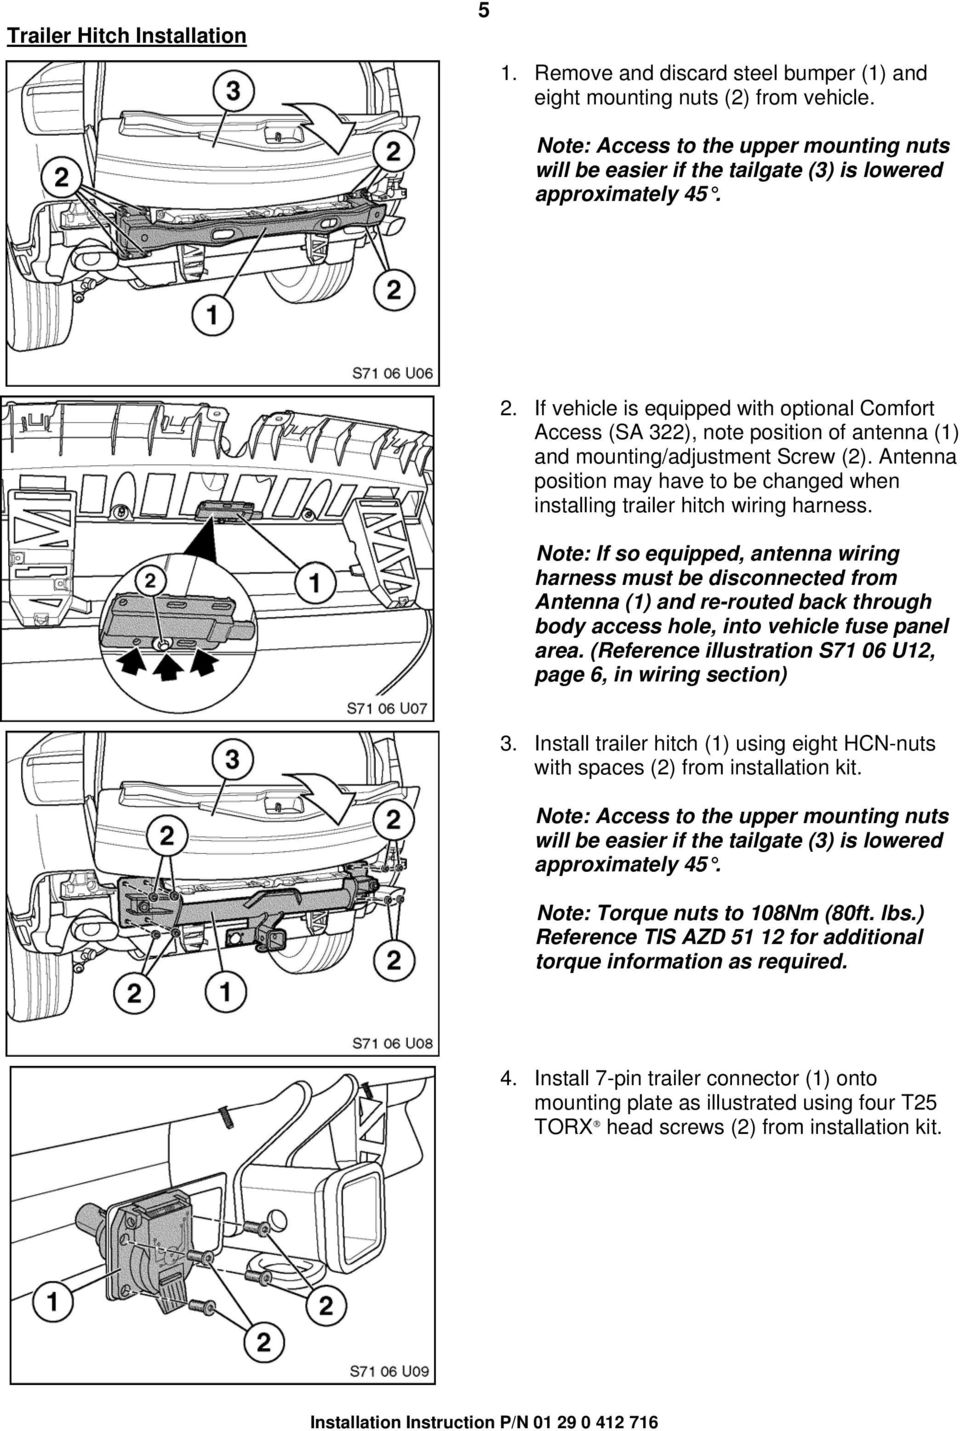 Installation Instructions Pdf Install Trailer Wiring Harness If Vehicle Is Equipped With Optional Comfort Access Sa 322 Note Position Of